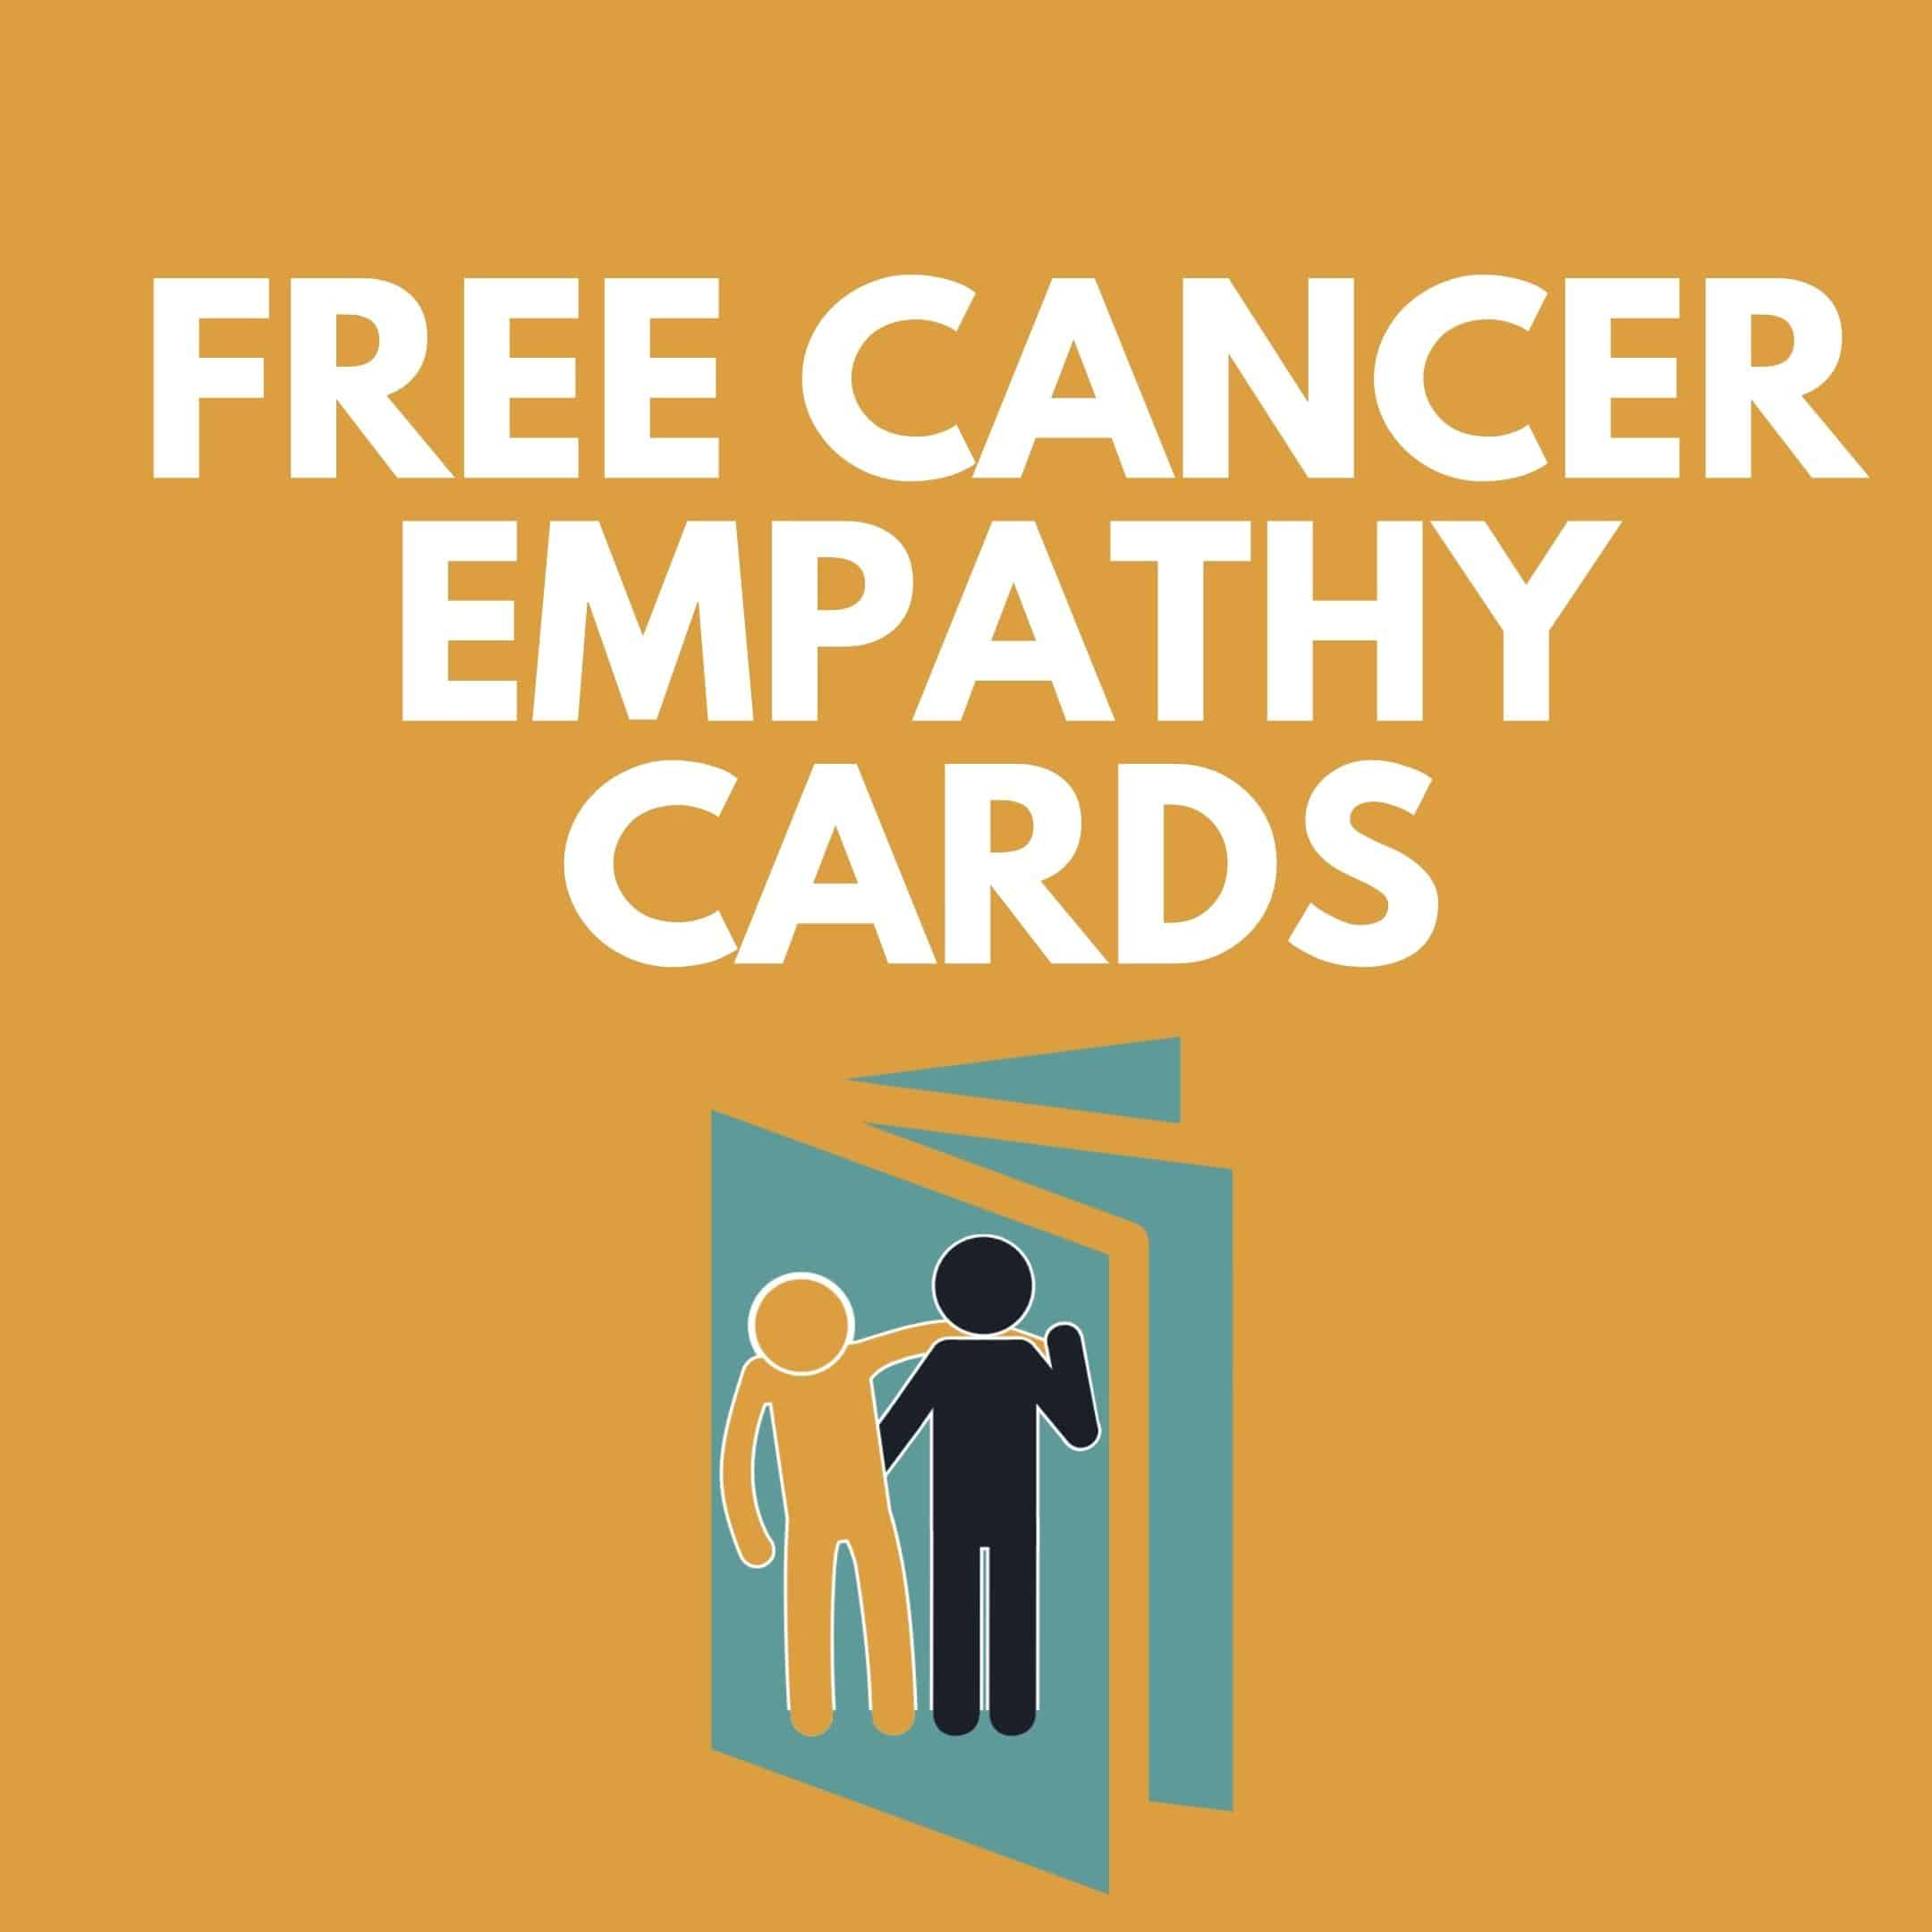 Free Cancer Empathy Cards